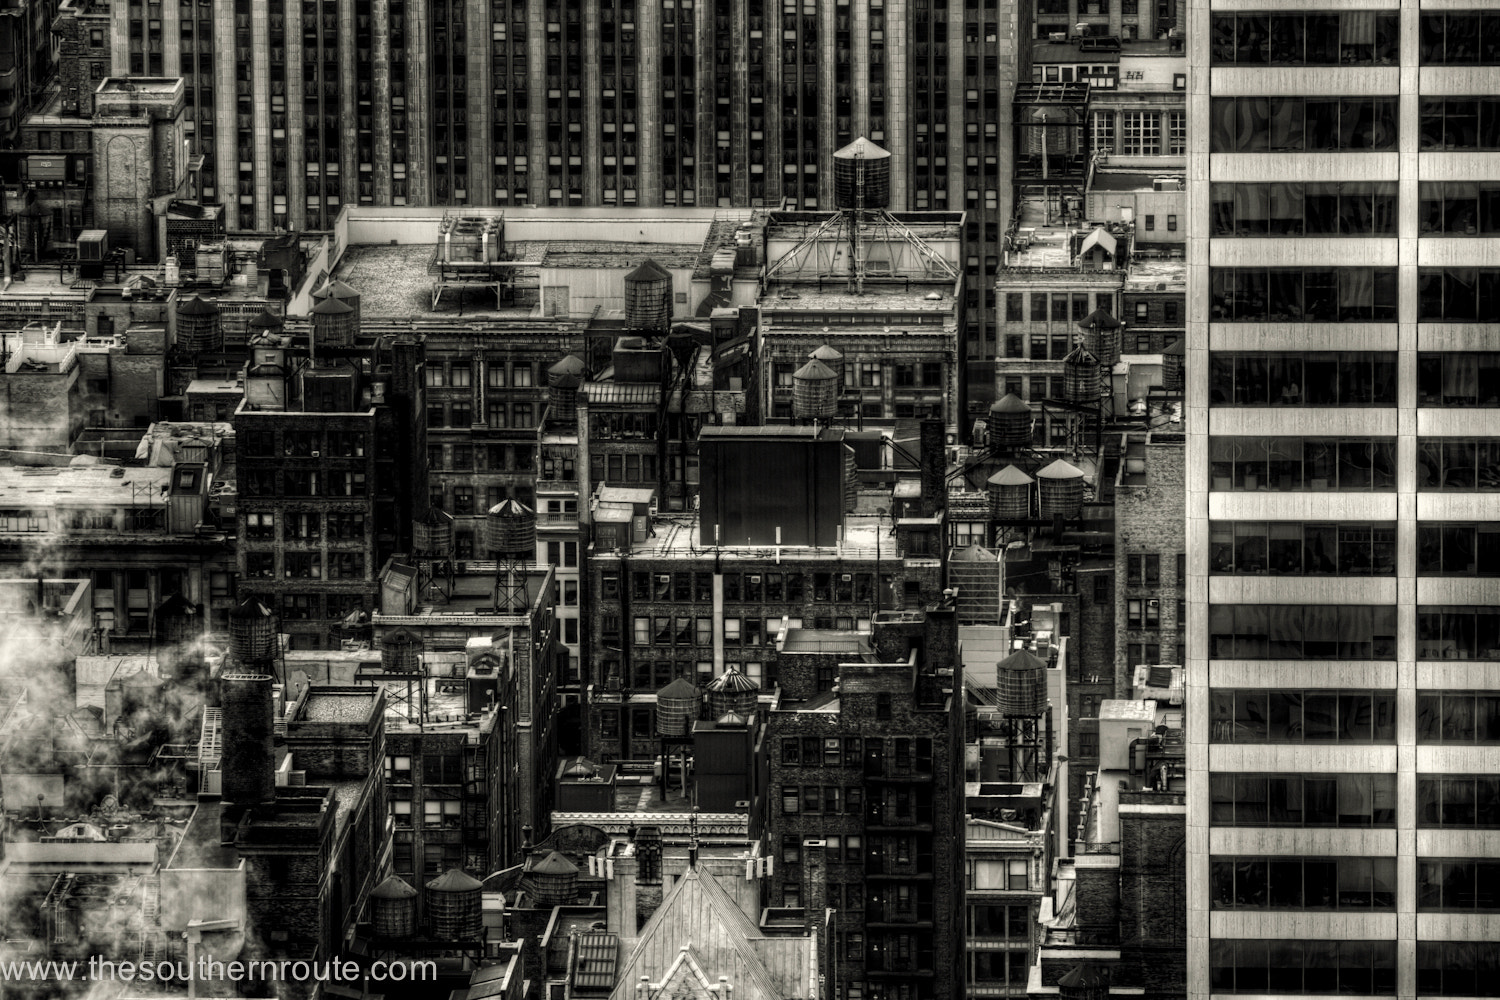 Photograph At the end, it's home again by regis boileau on 500px